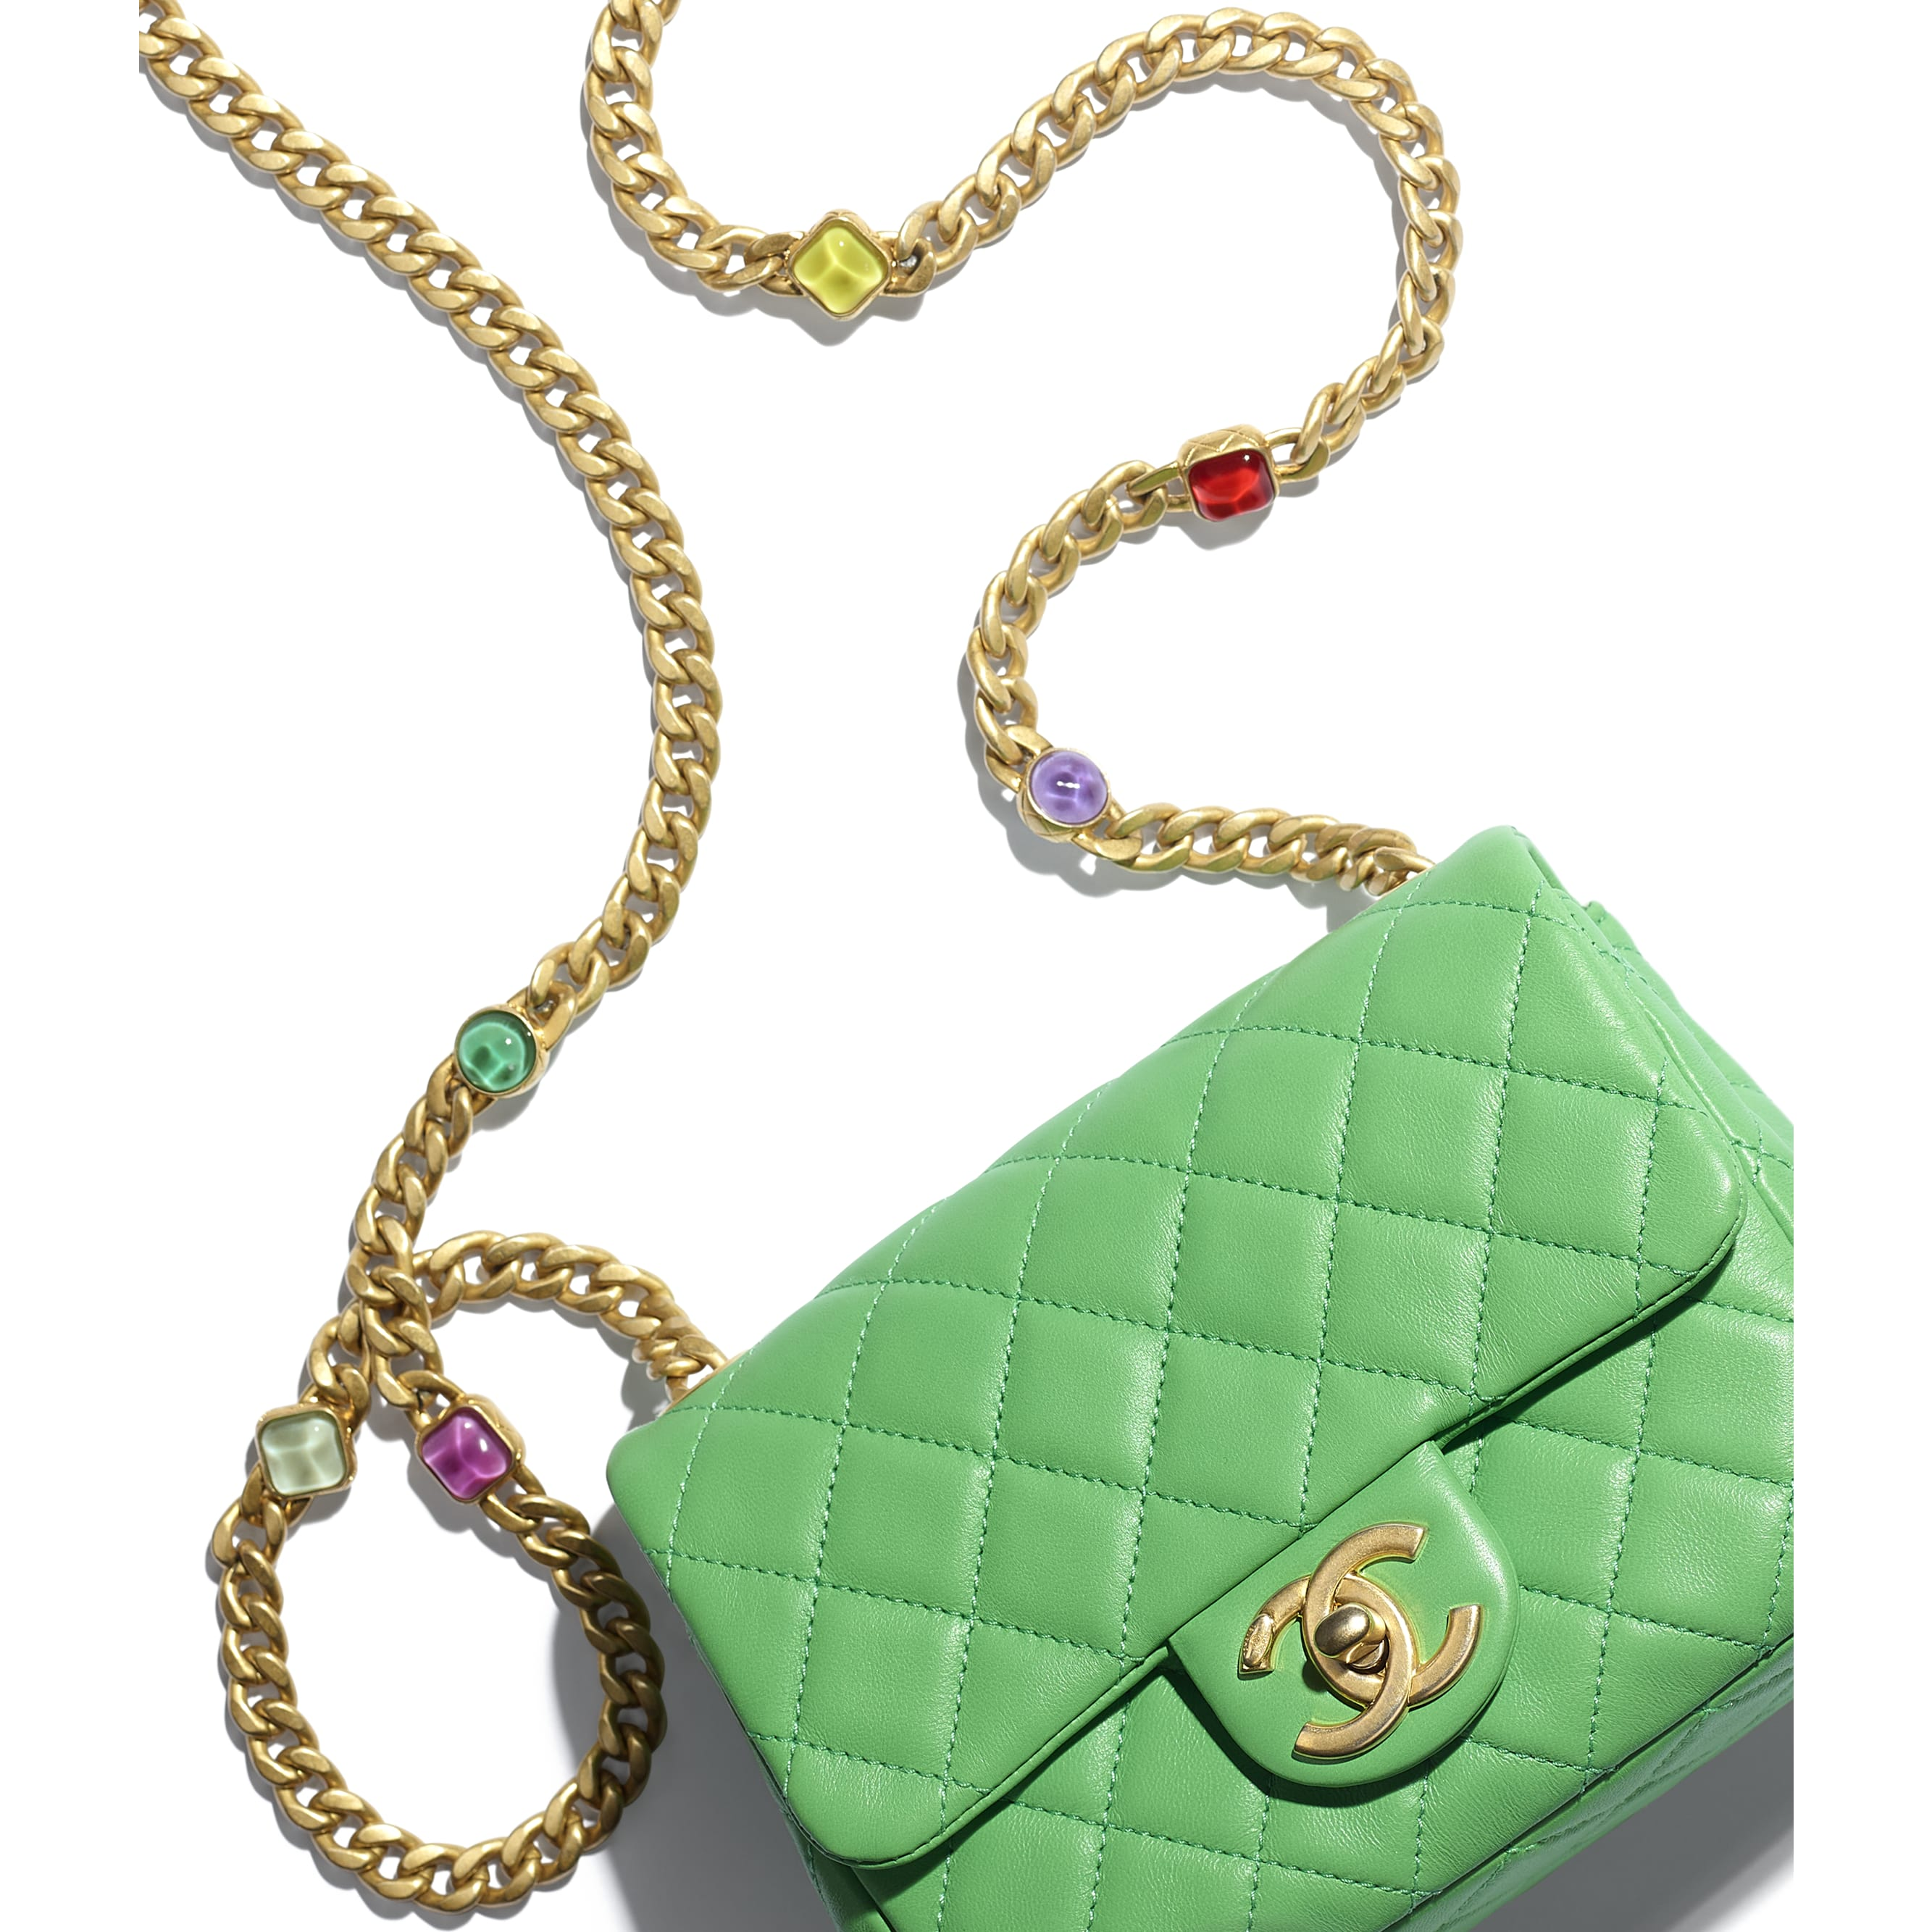 Flap Bag - Green - Lambskin, Resin & Gold-Tone Metal - CHANEL - Extra view - see standard sized version